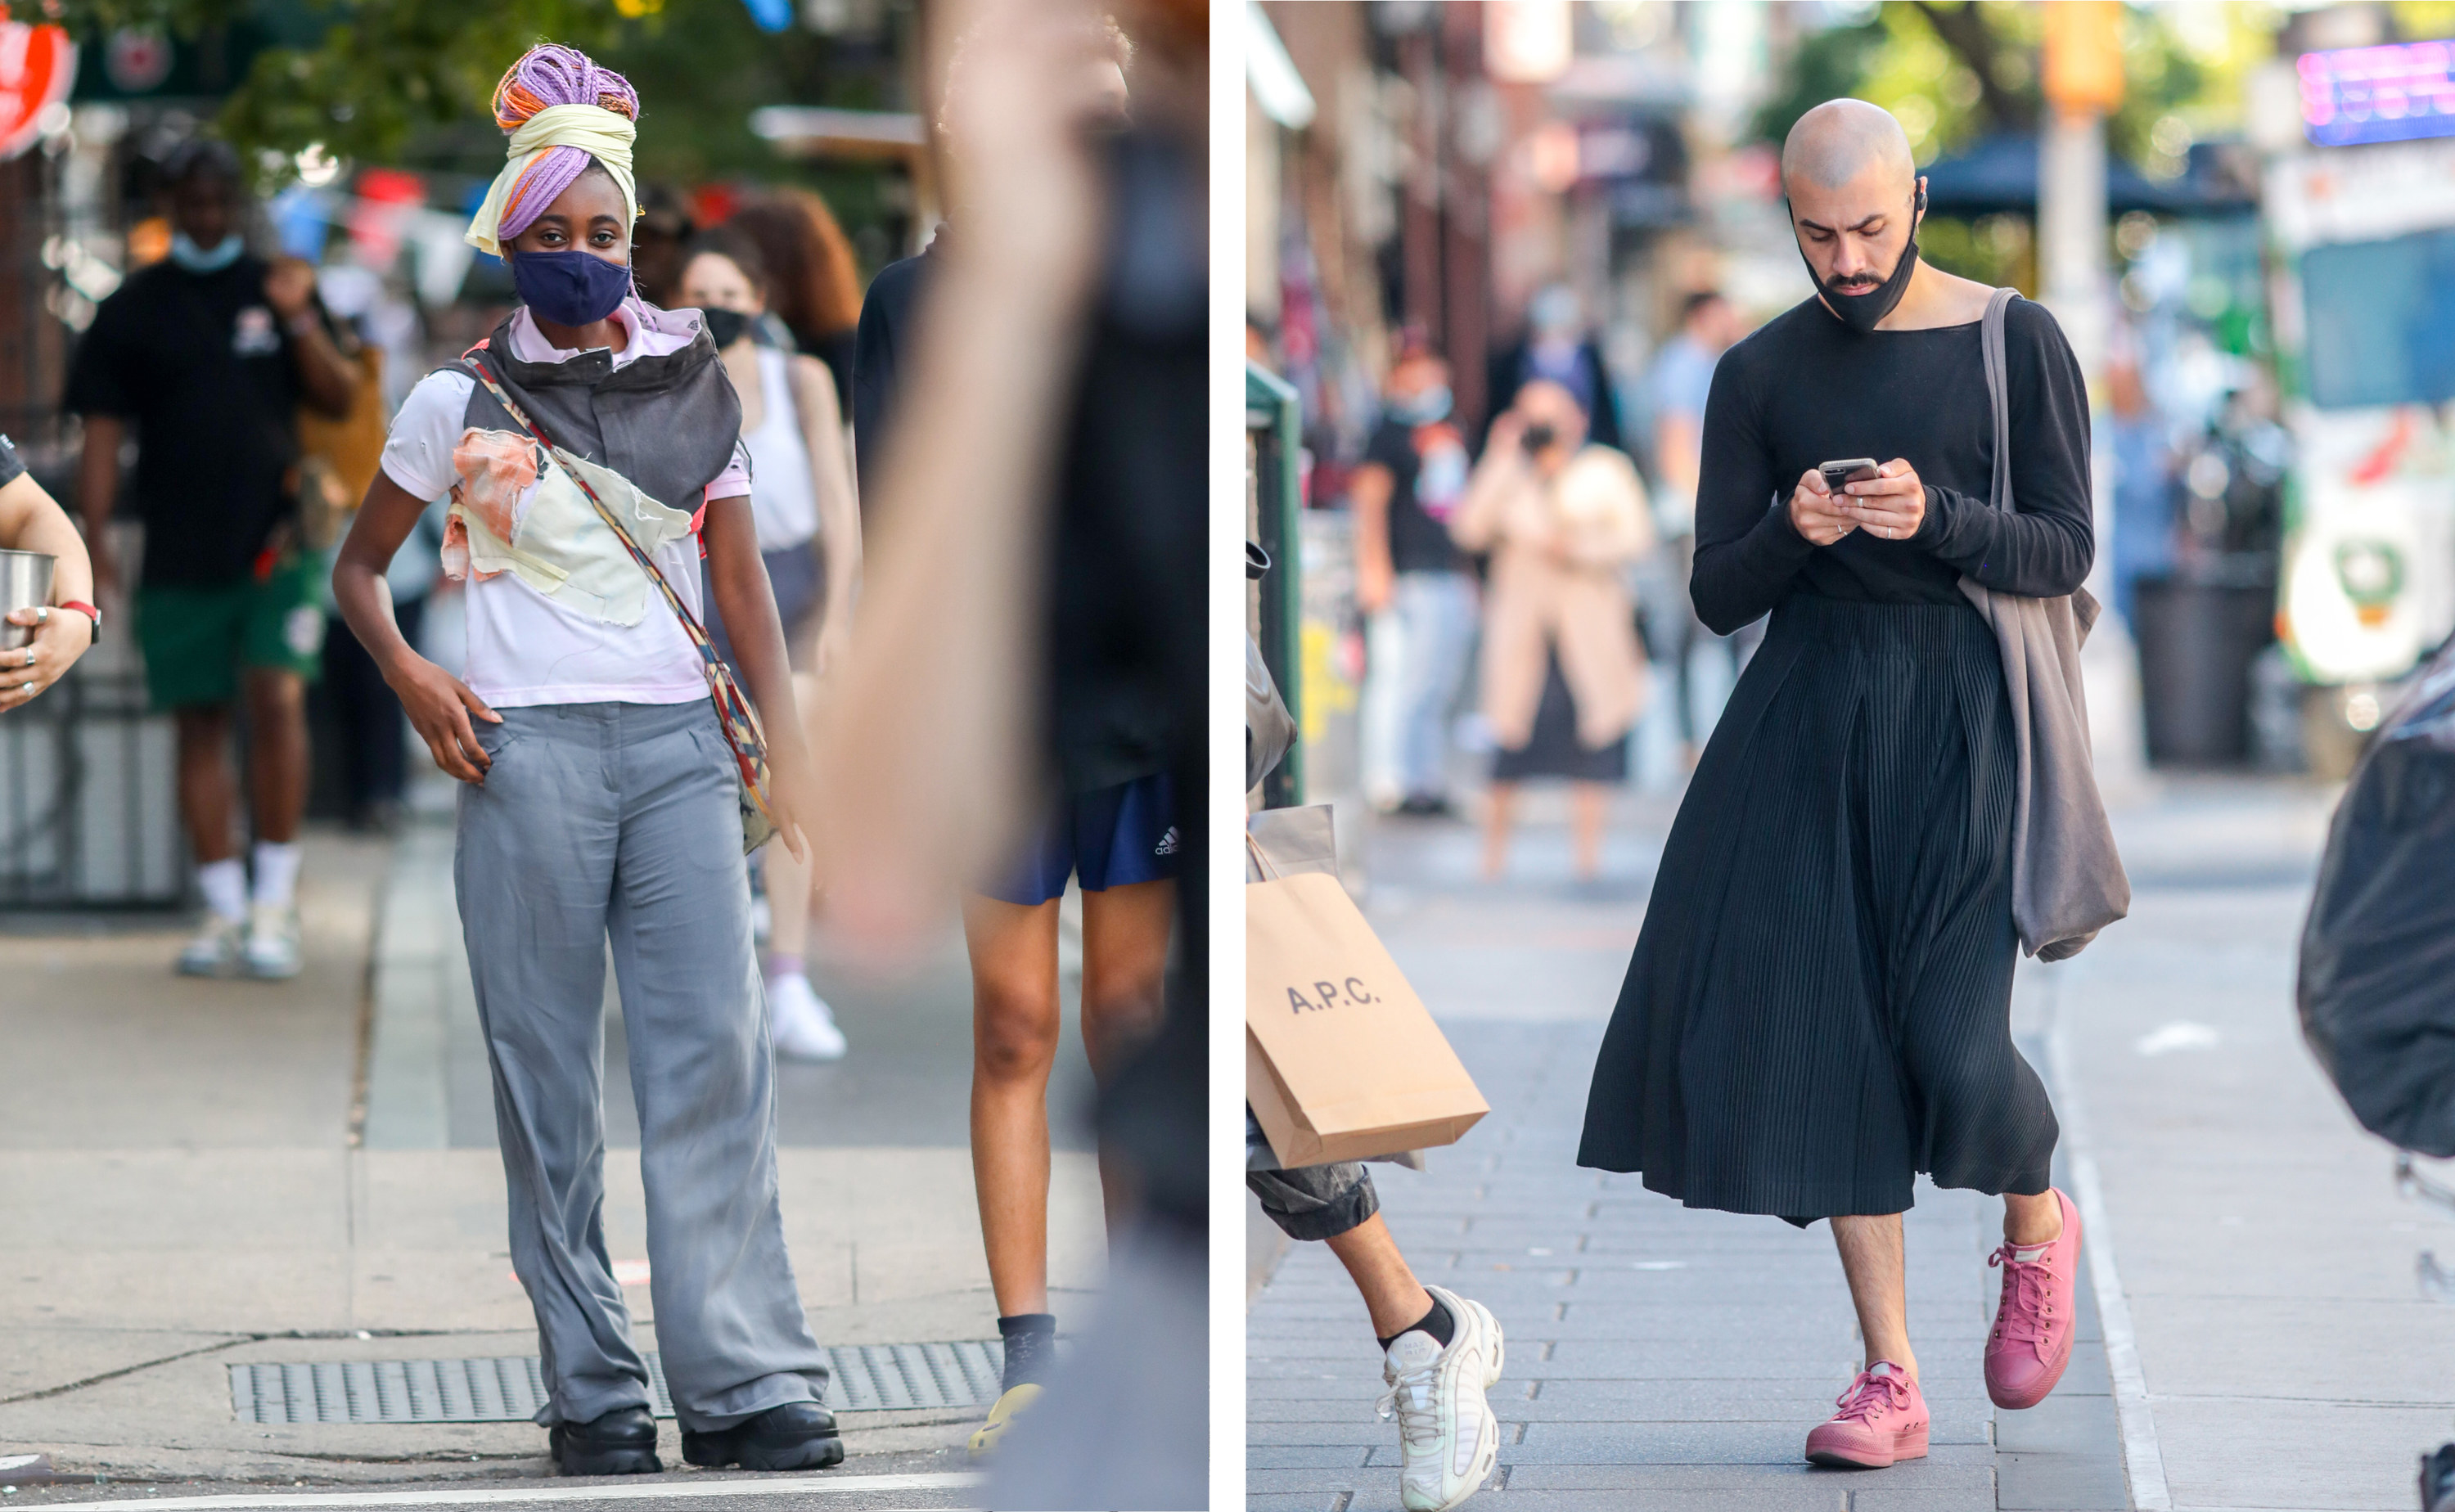 Left, a woman with a pair of pants cut off around her neck. right, a man in a black skirt looking at his phone as he walks down the street